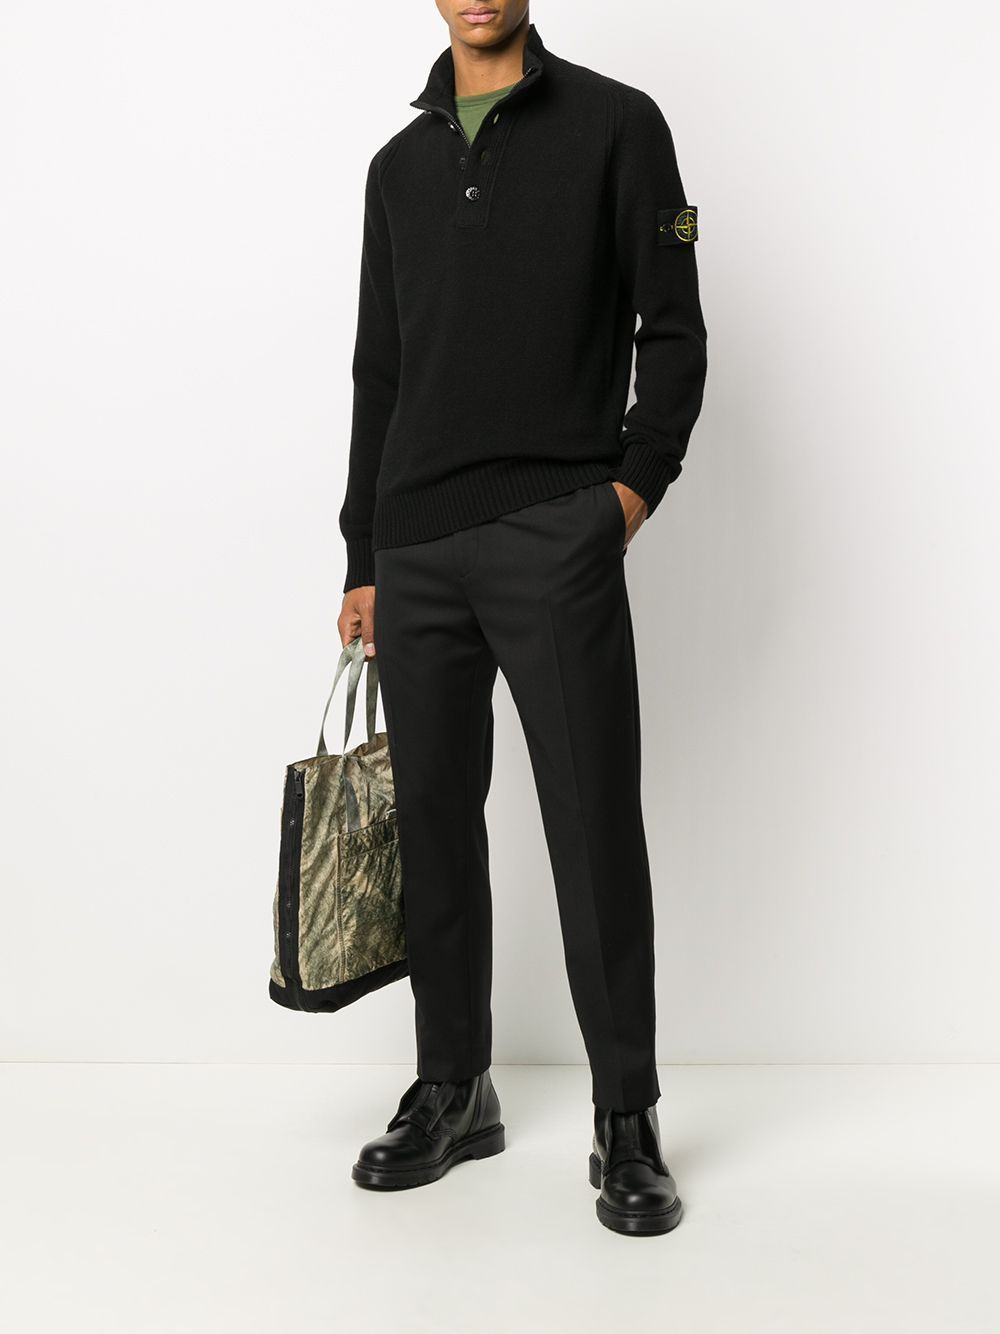 Stone Island Buttoned Up Knitted Sweatshirt Black